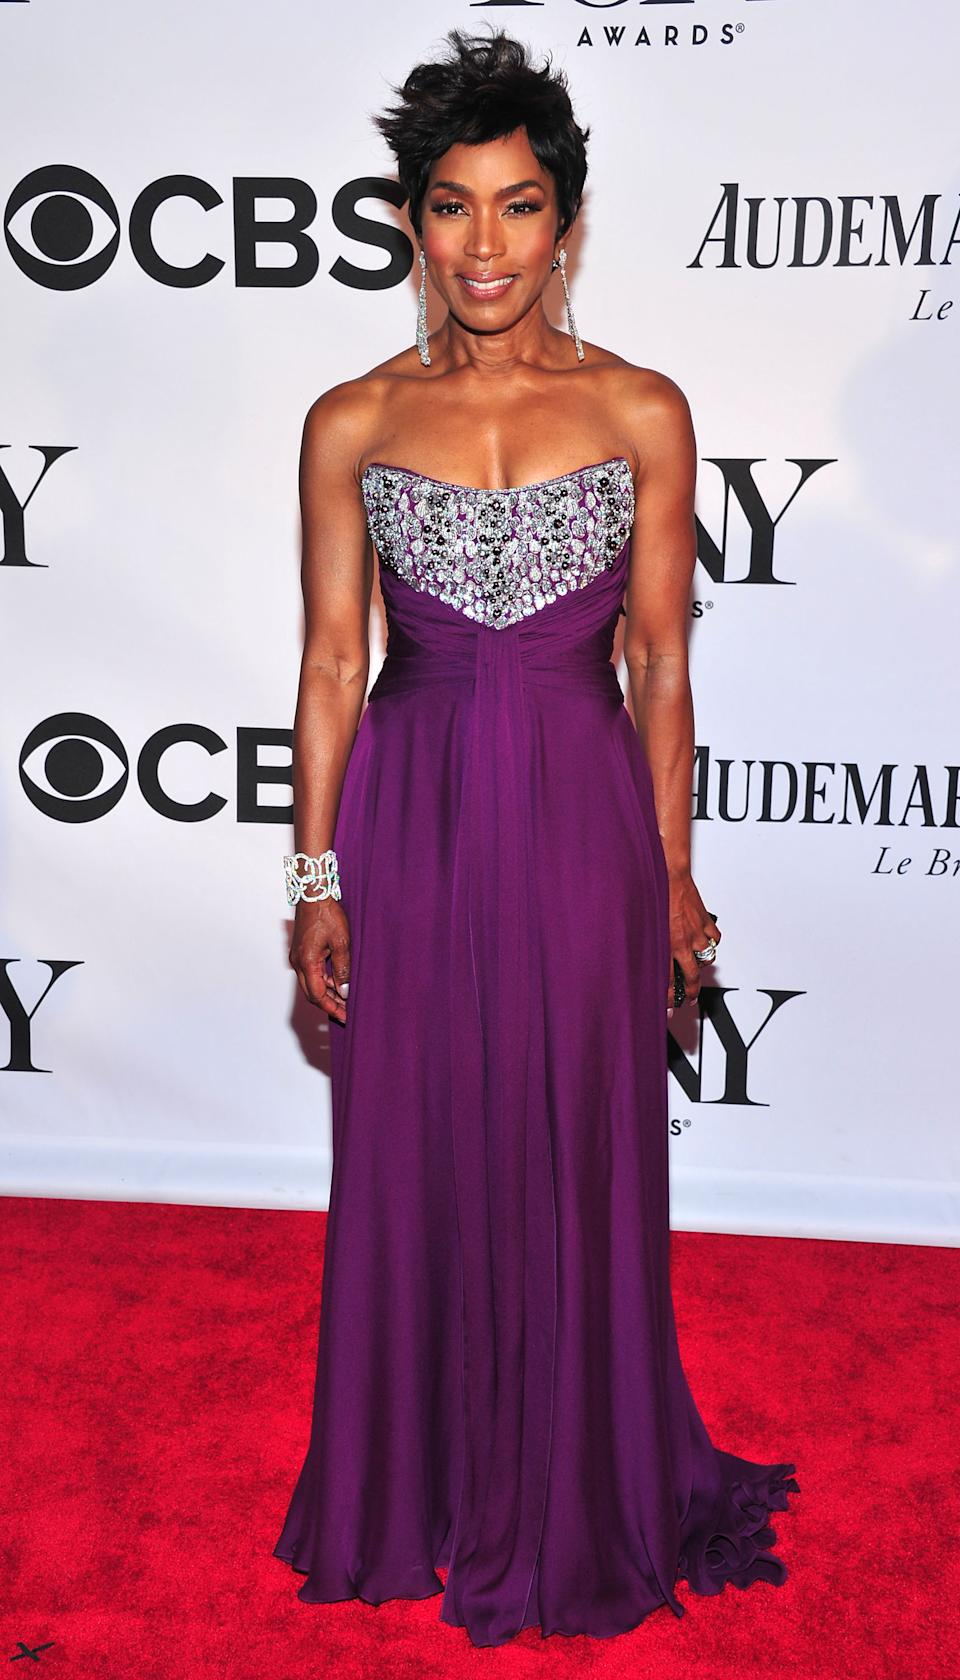 Angela Bassett arrives on the red carpet at the 67th Annual Tony Awards, on Sunday, June 9, 2013 in New York. (Photo by Charles Sykes/Invision/AP)